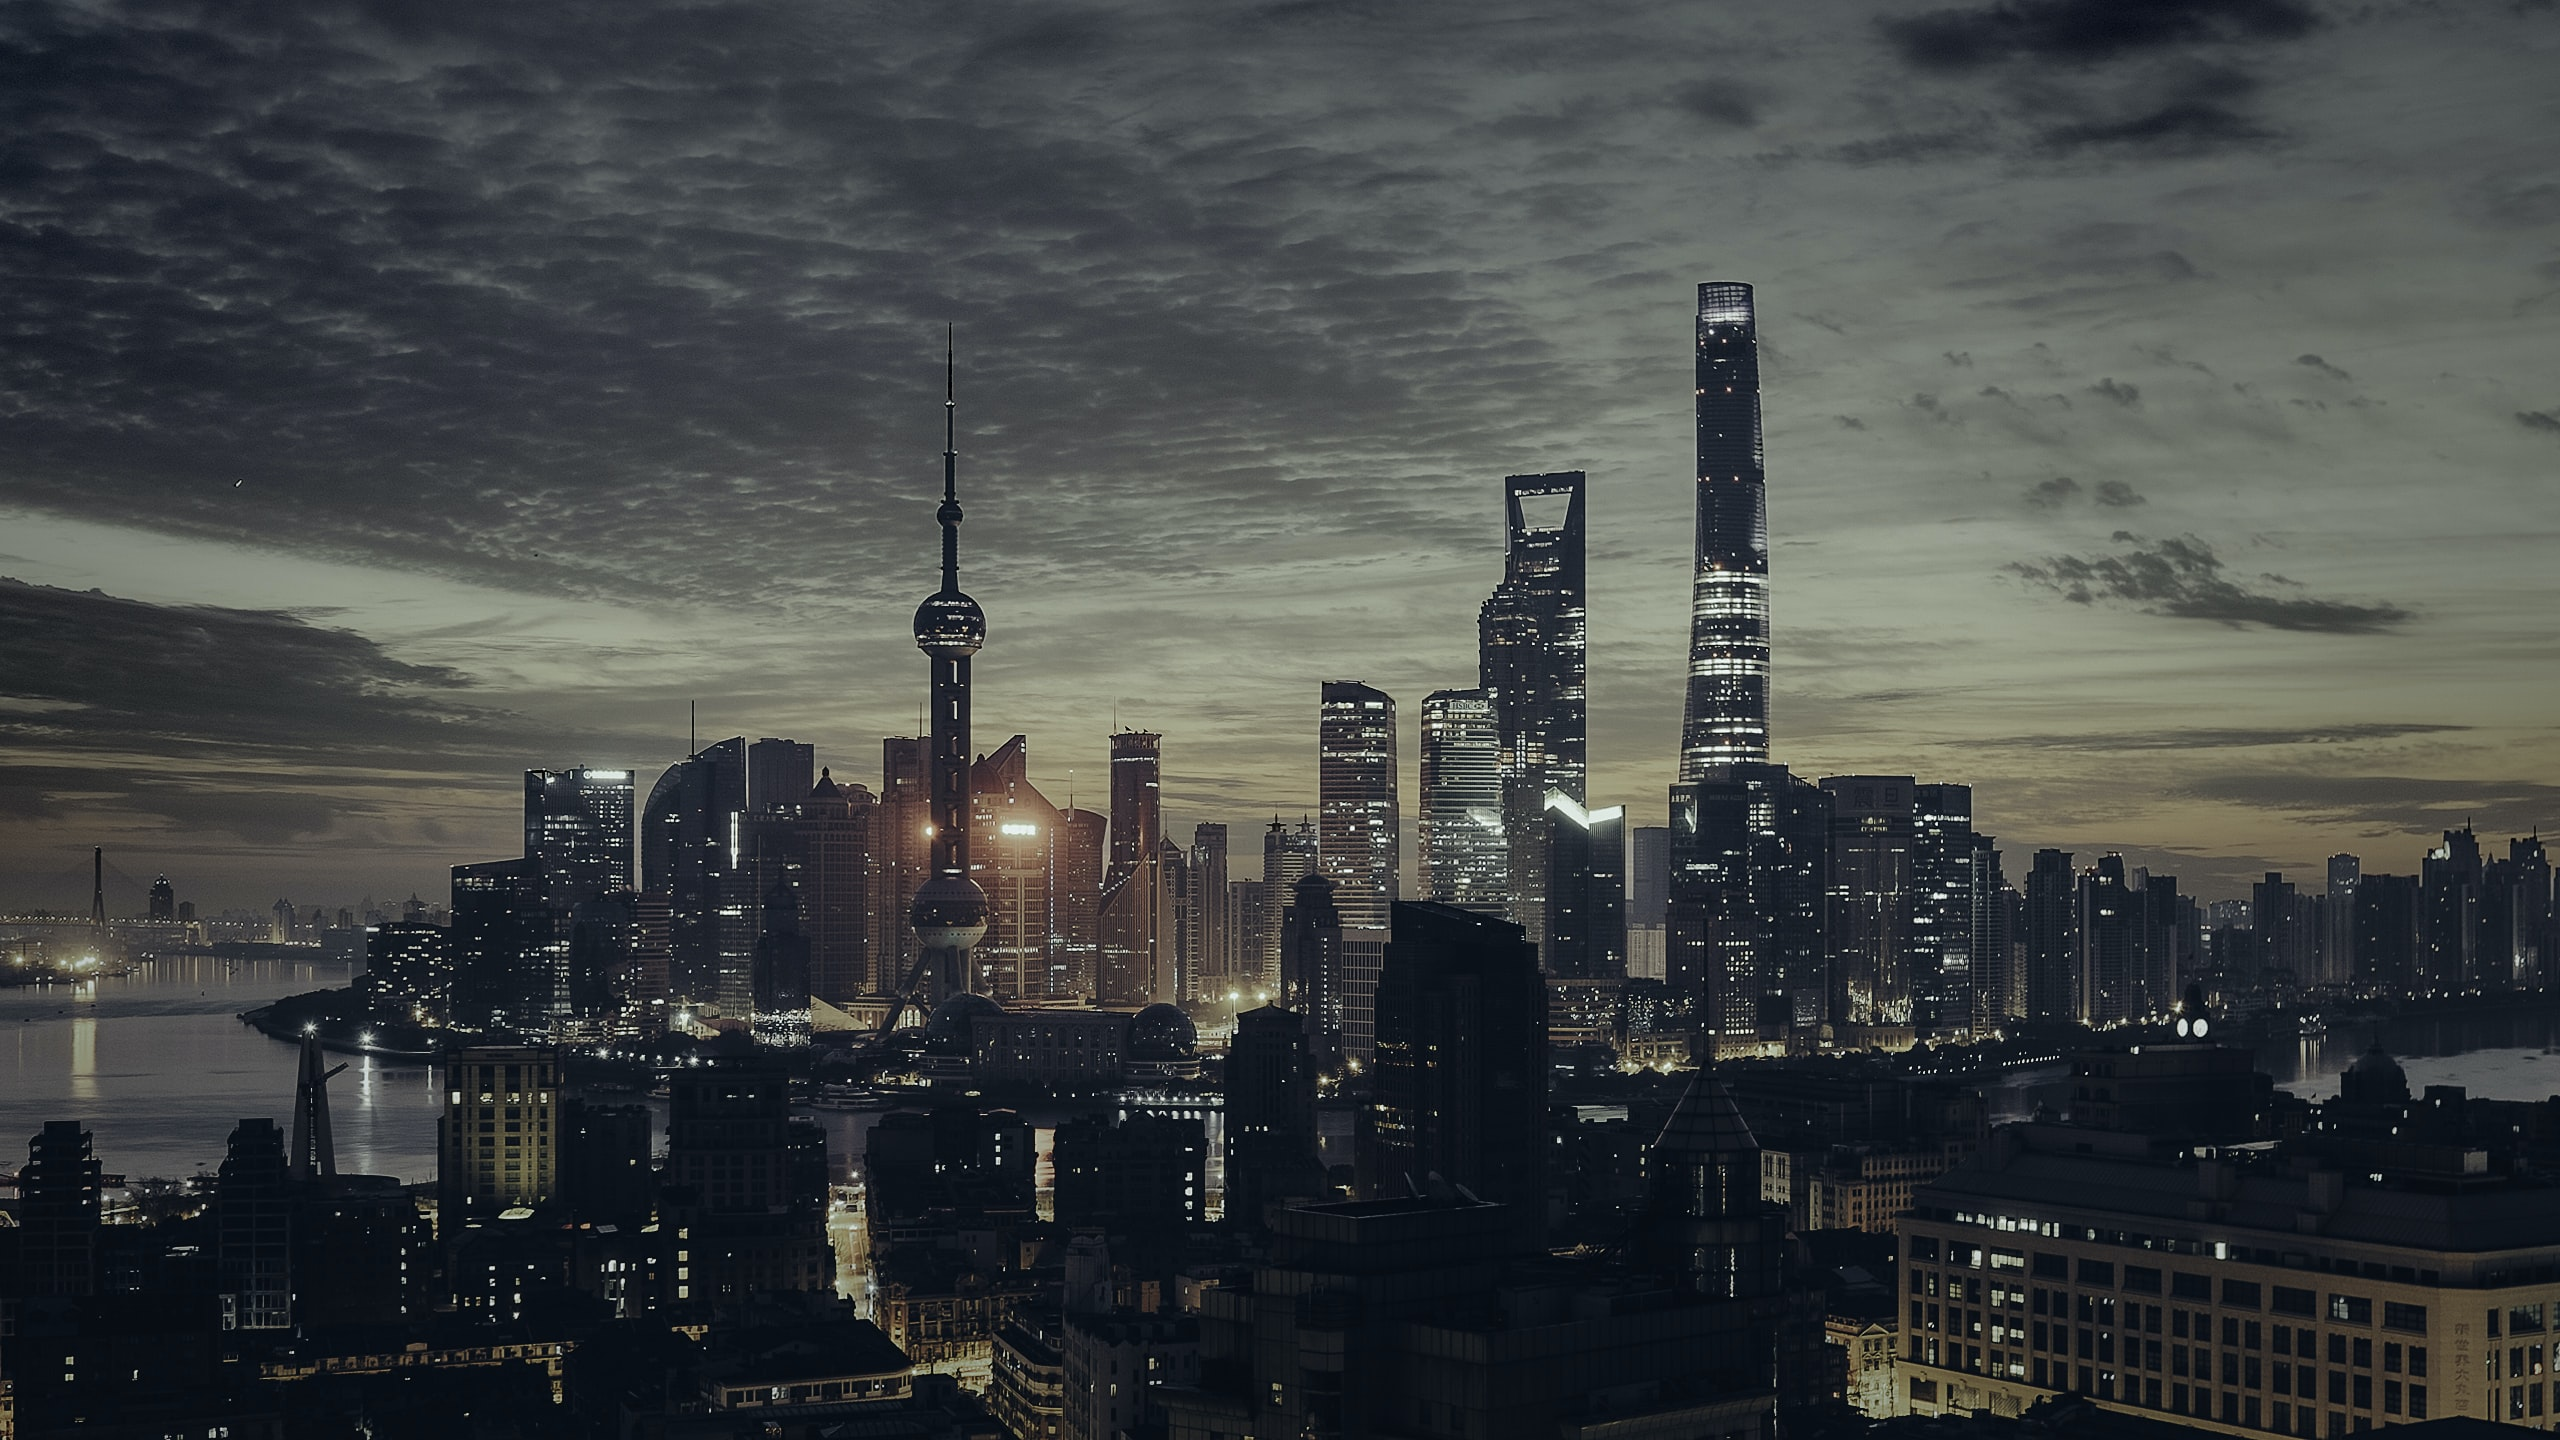 Shanghai tower in night time